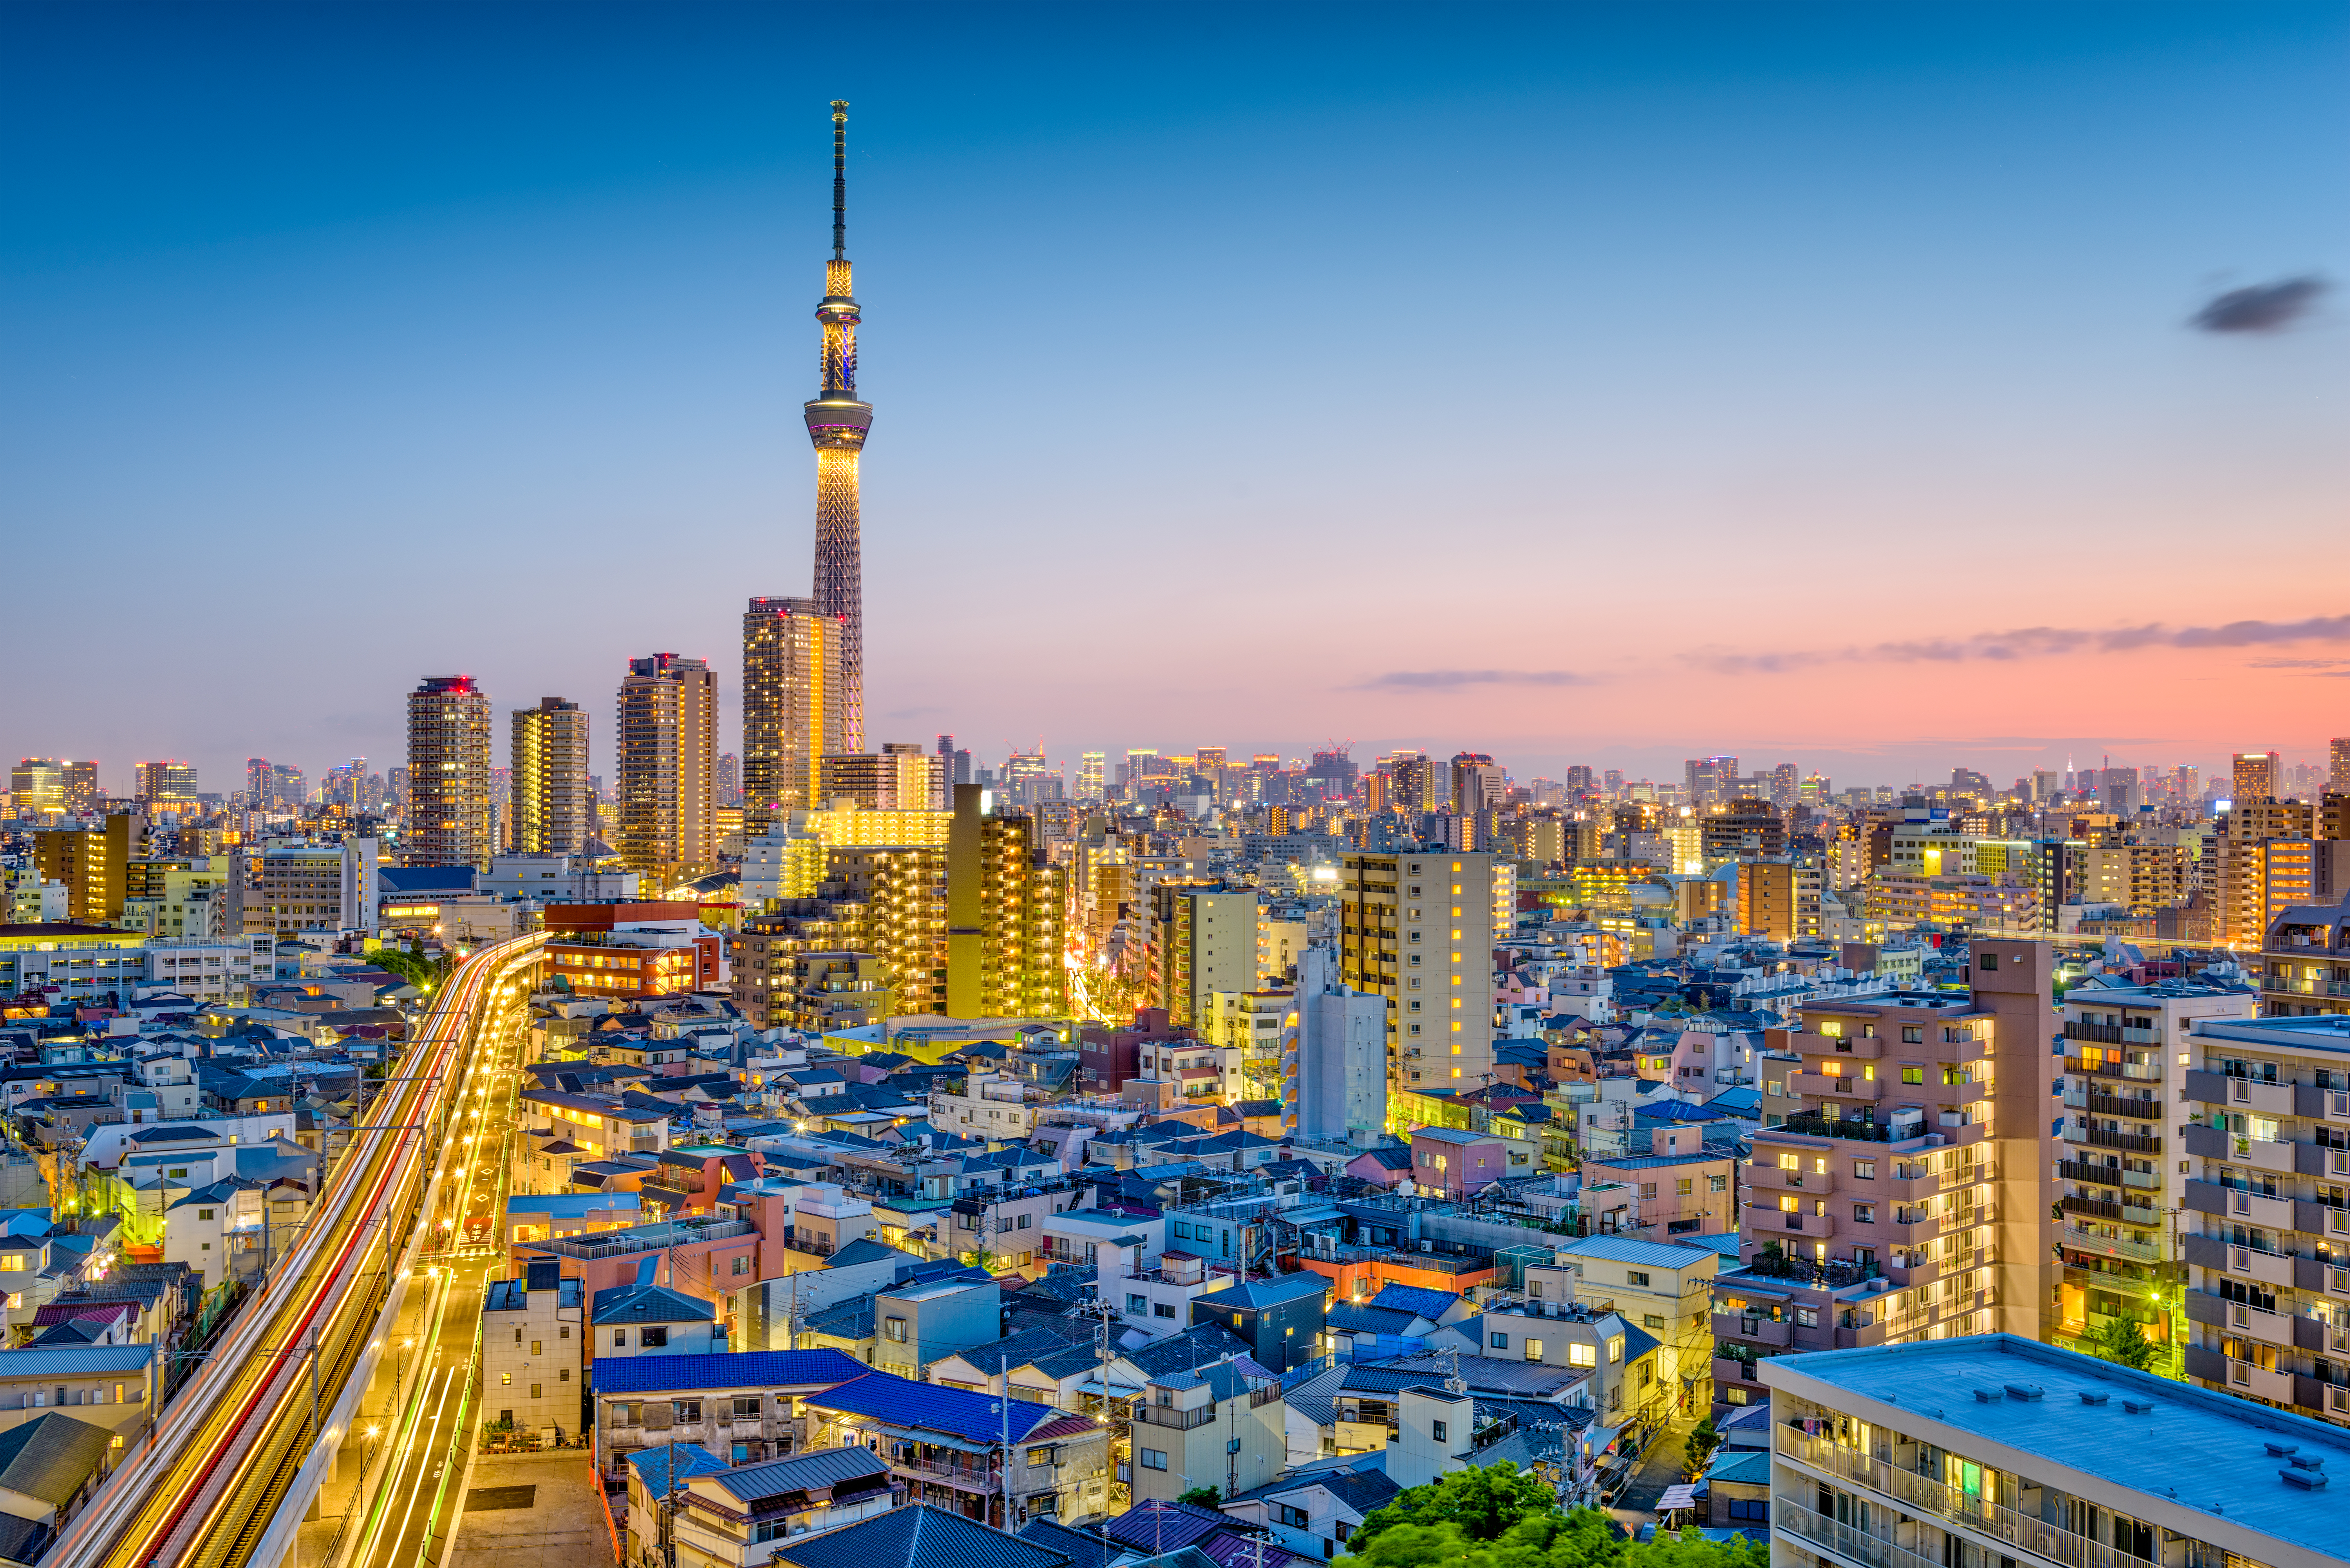 Startup Guide Tokyo: how this global tech hub is reinventing itself for a new wave of entrepreneurs